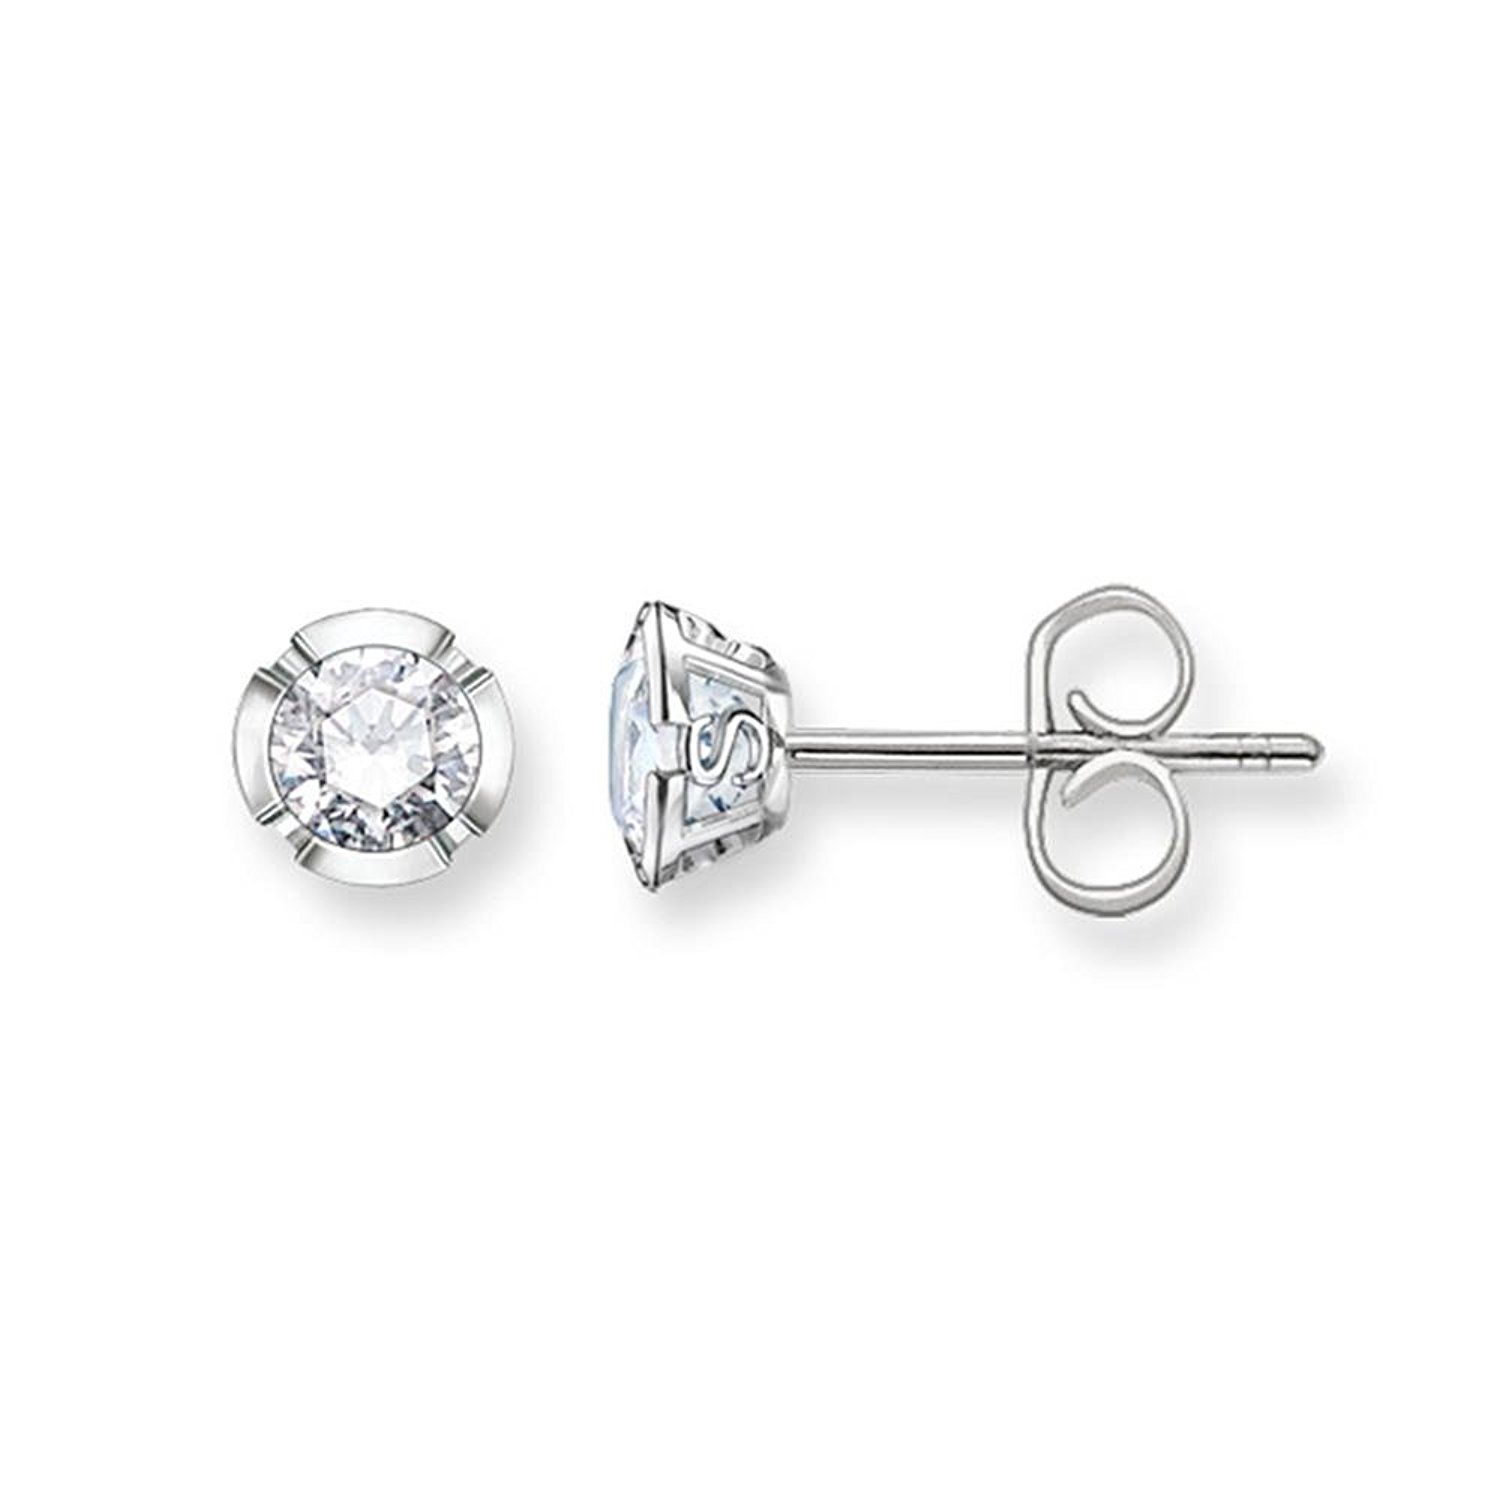 Thomas Sabo Cubic Zirconia 925- Sterling Silver Stud Earrings JO8S8nTeb